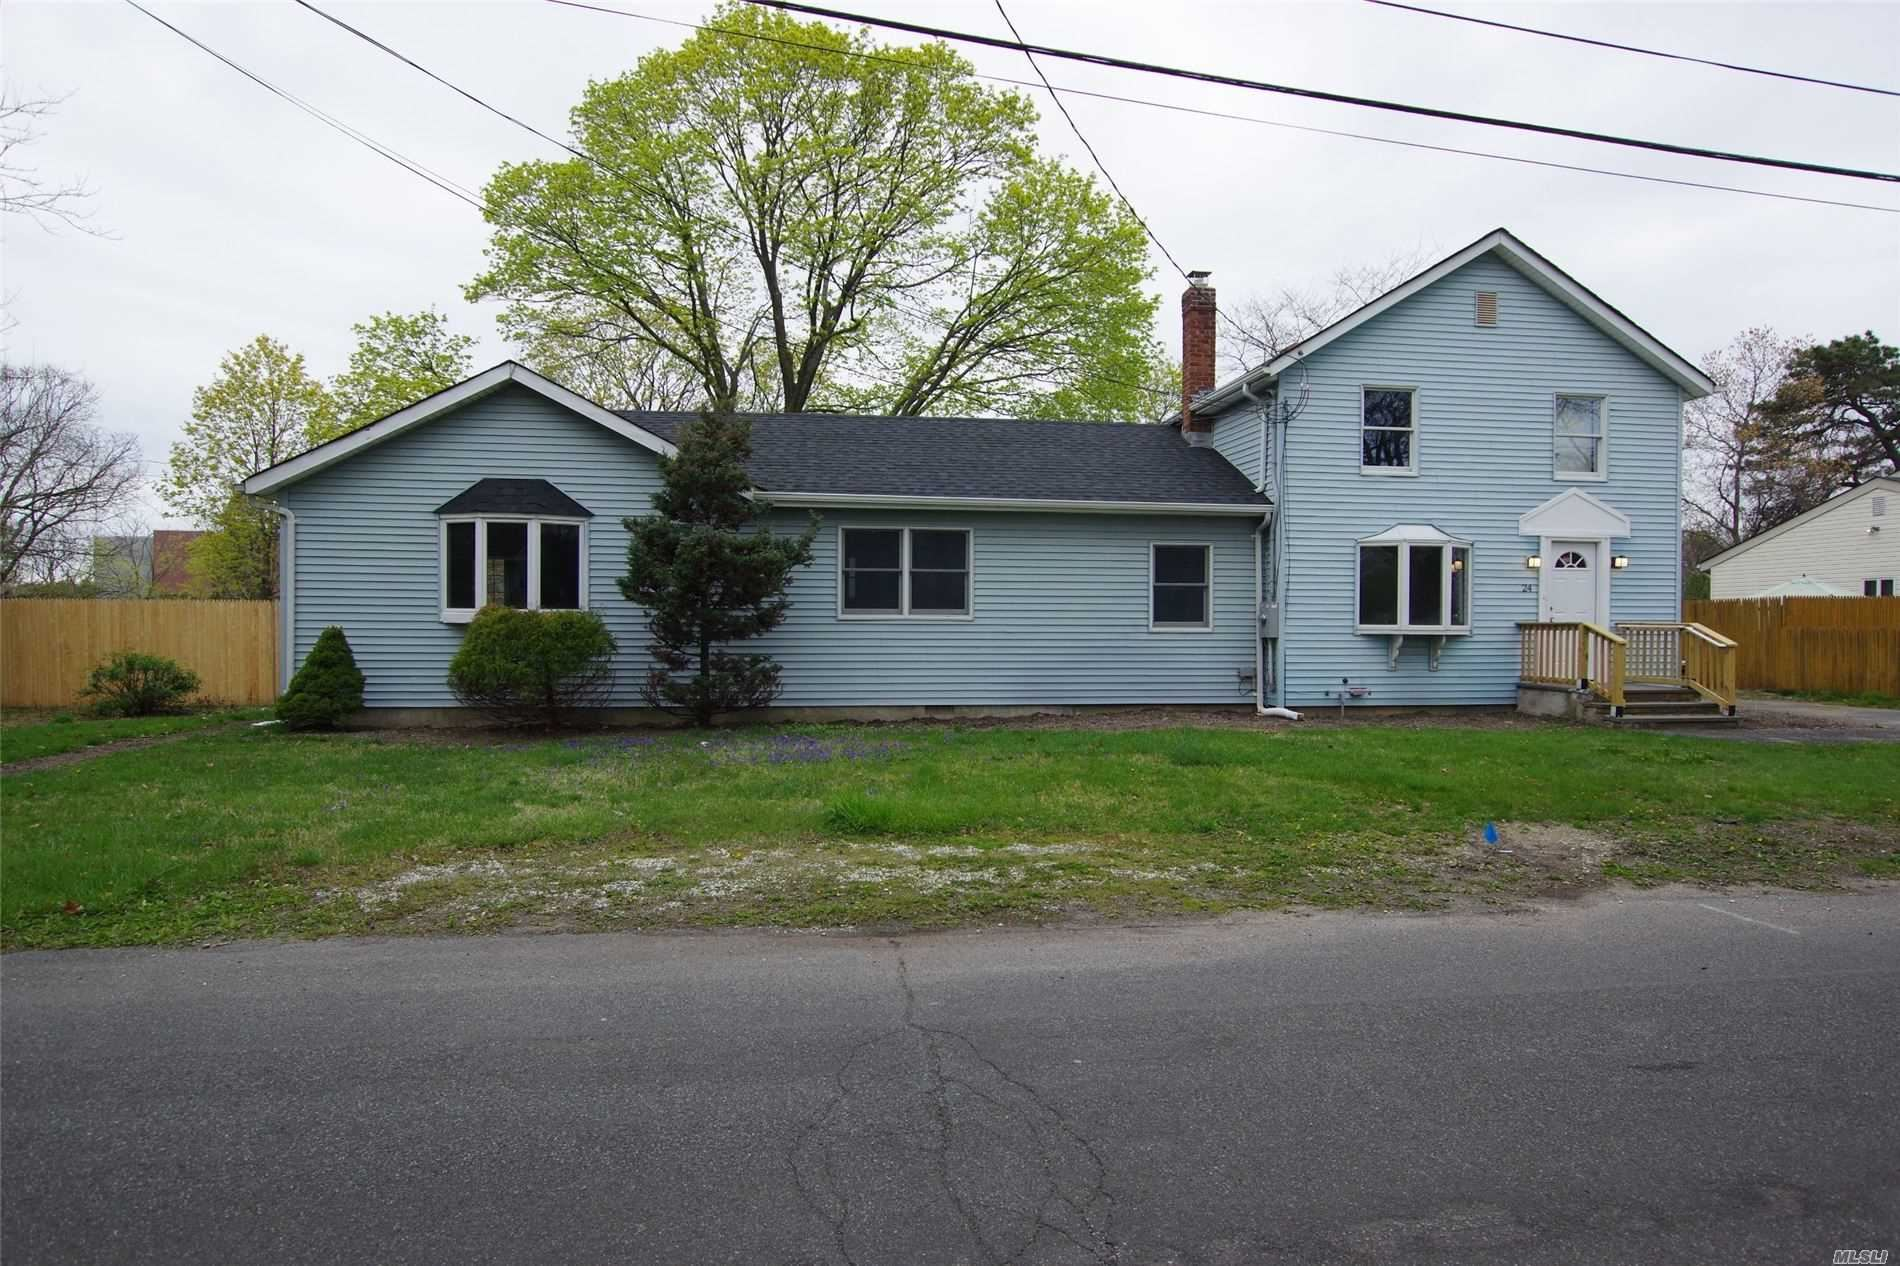 24 Floral Ave, Holtsville, NY 11742 - MLS#: 3215607